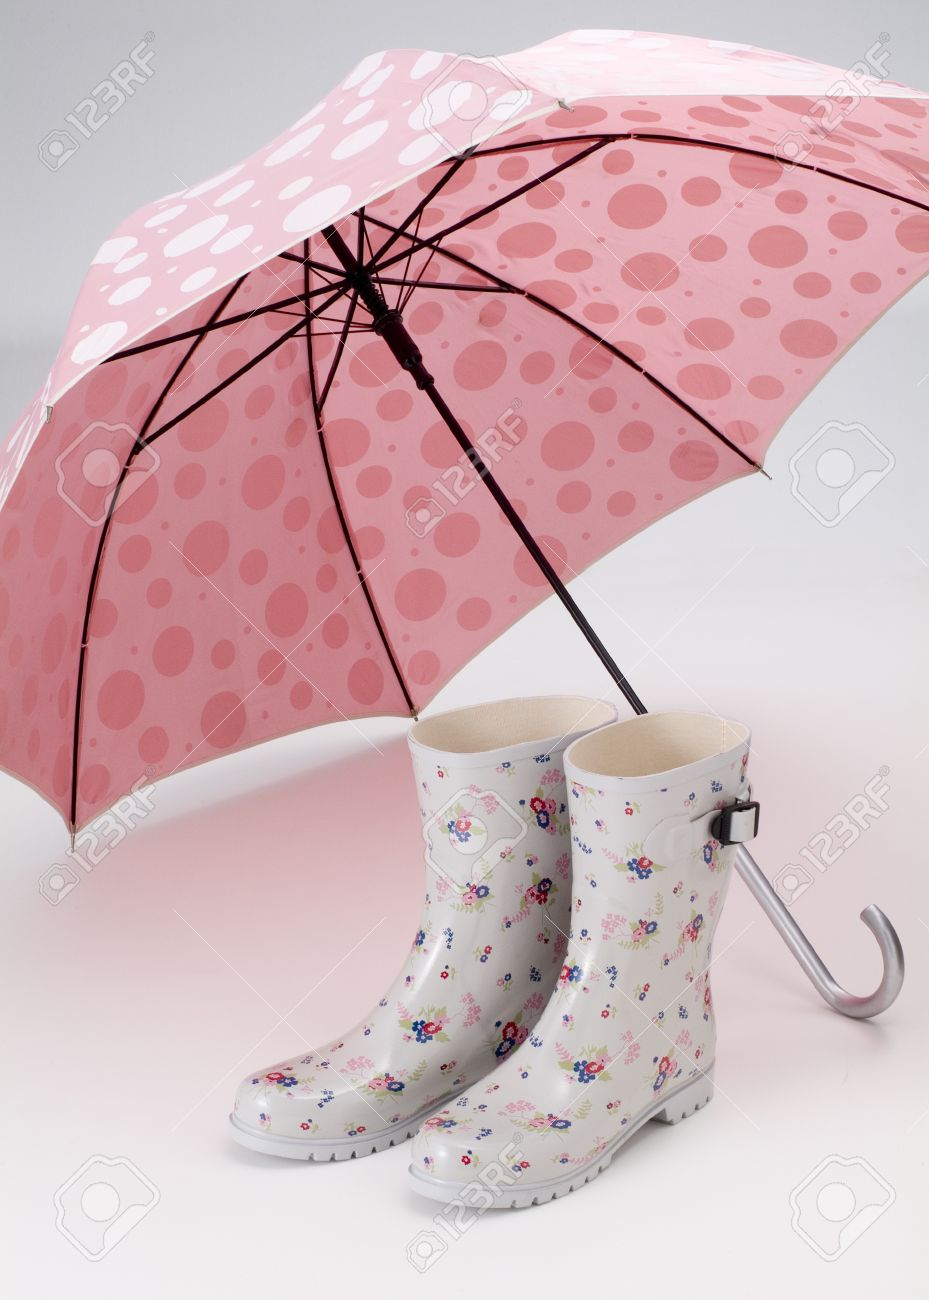 cute umbrella and rubber boots of rainy day stock photo picture and